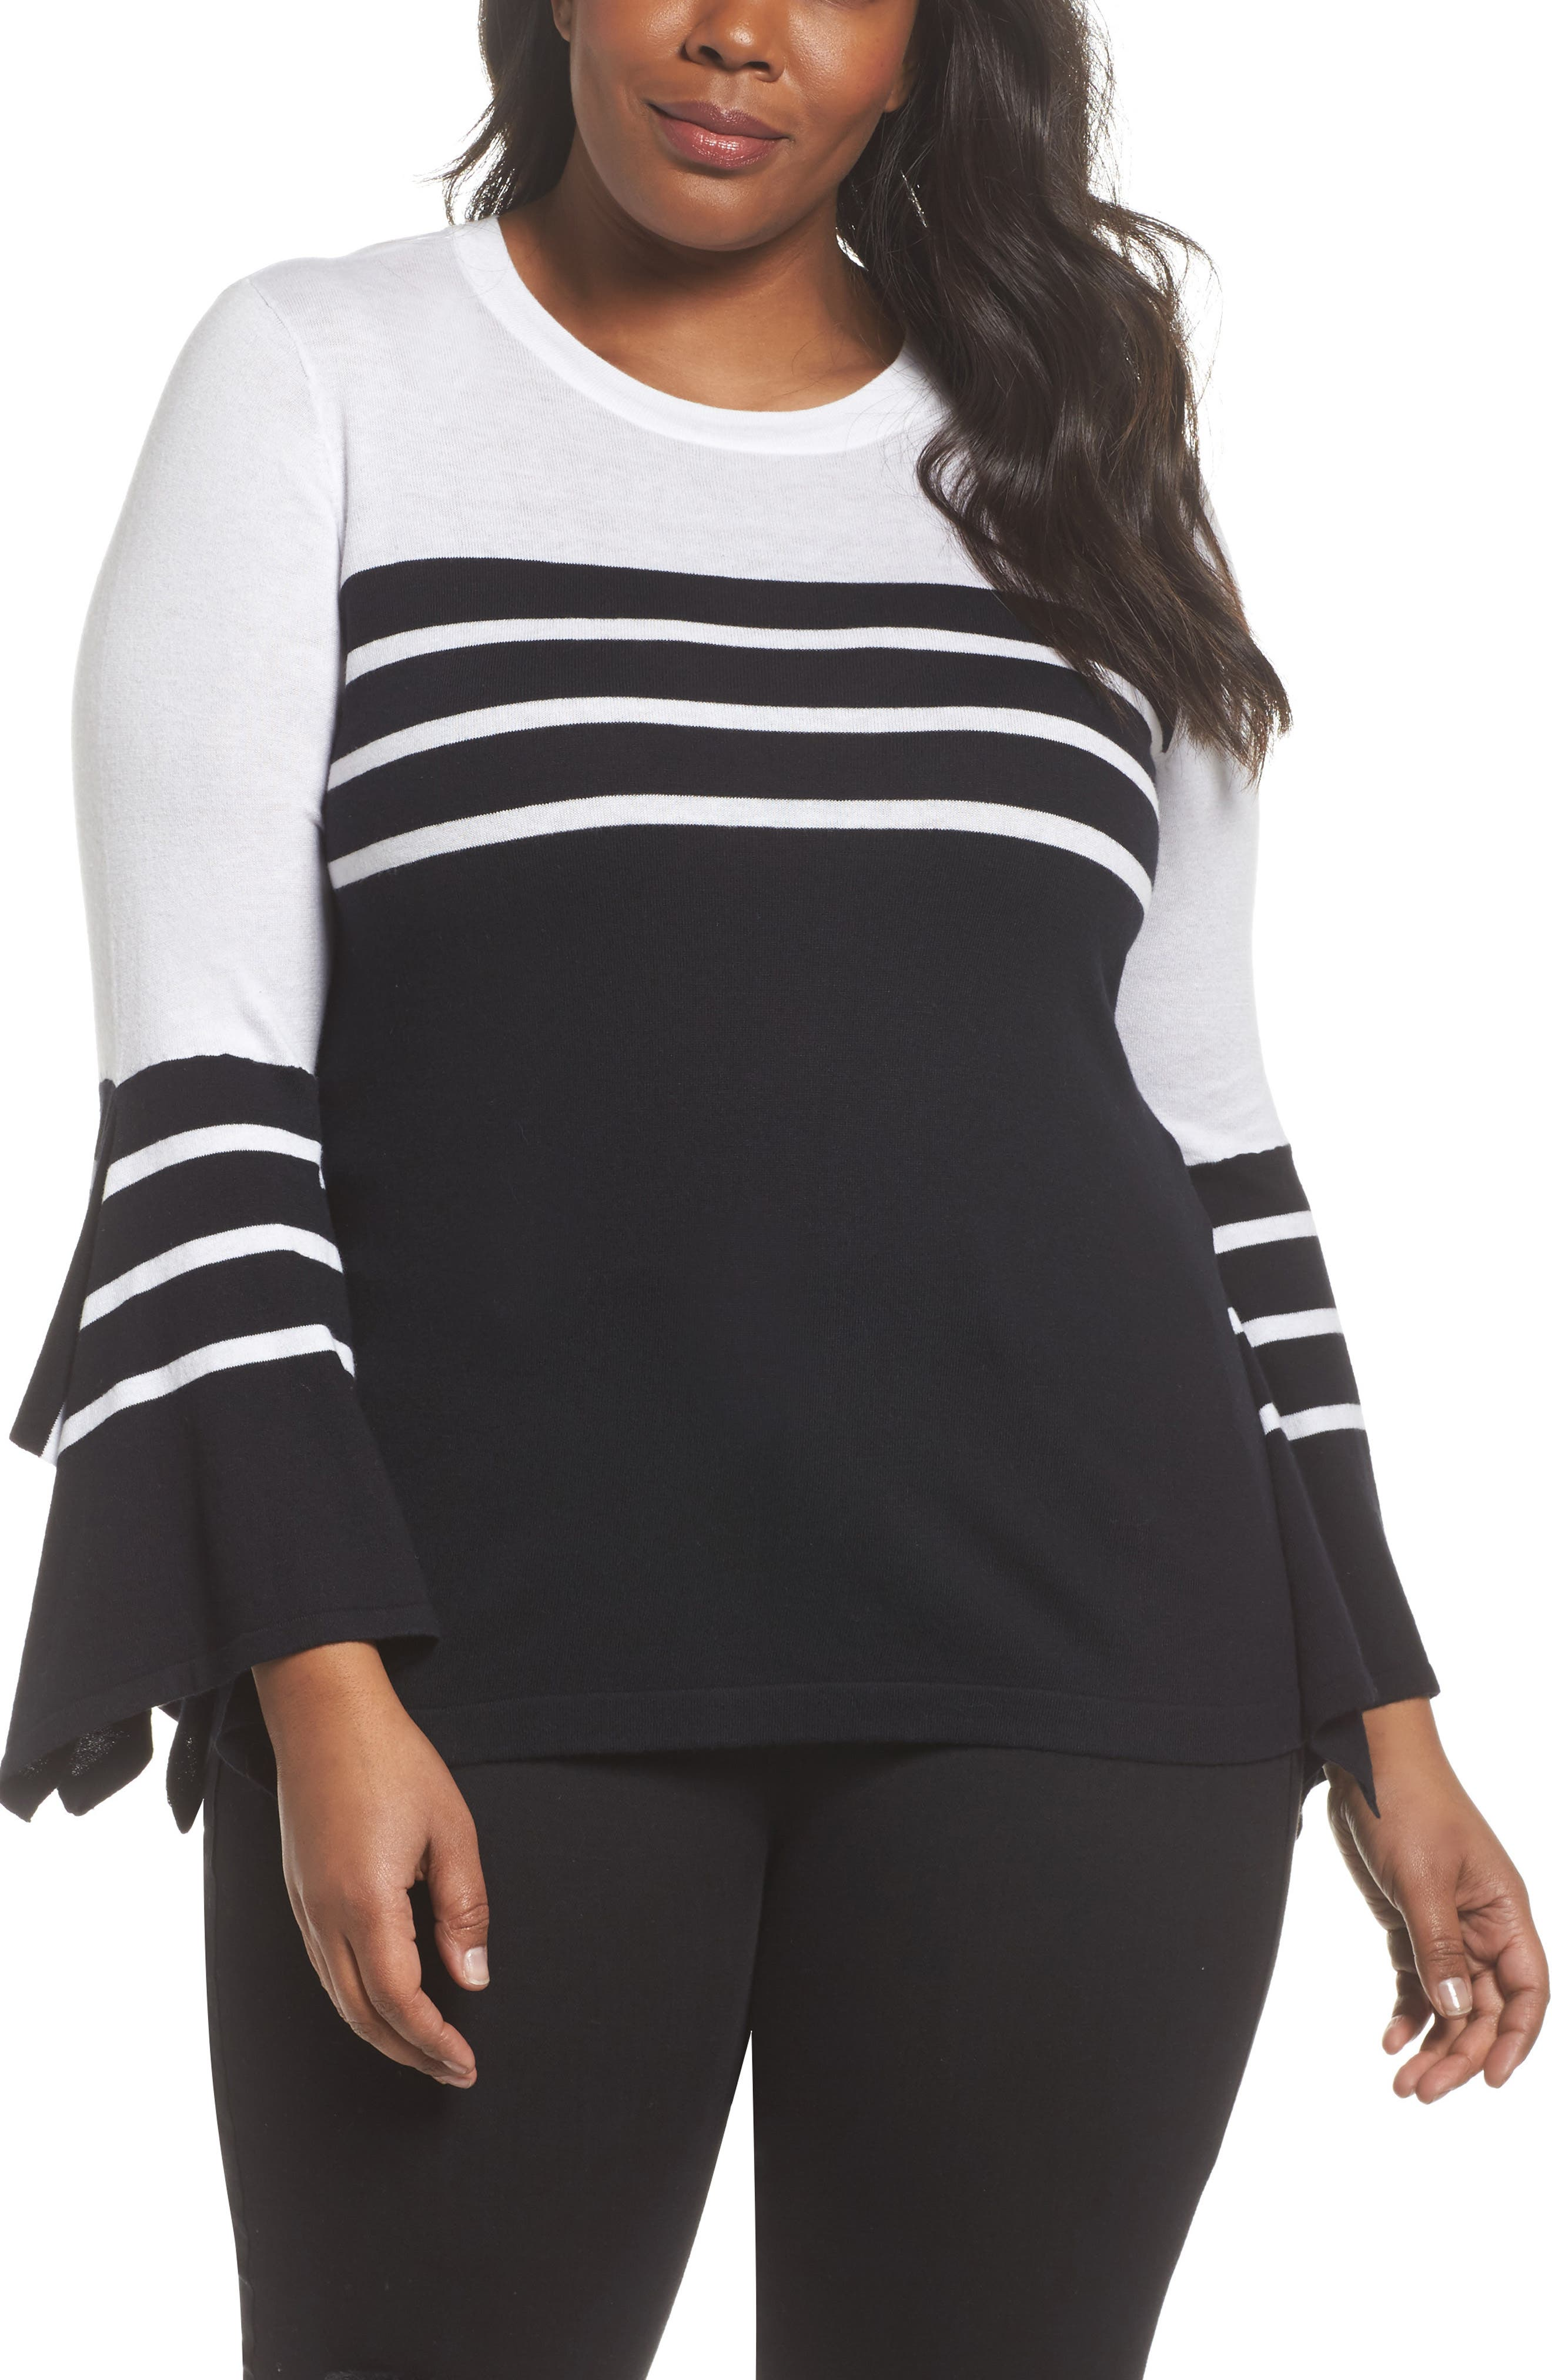 Alternate Image 1 Selected - Vince Camuto Handkerchief Sleeve Stripe Sweater (Plus Size)